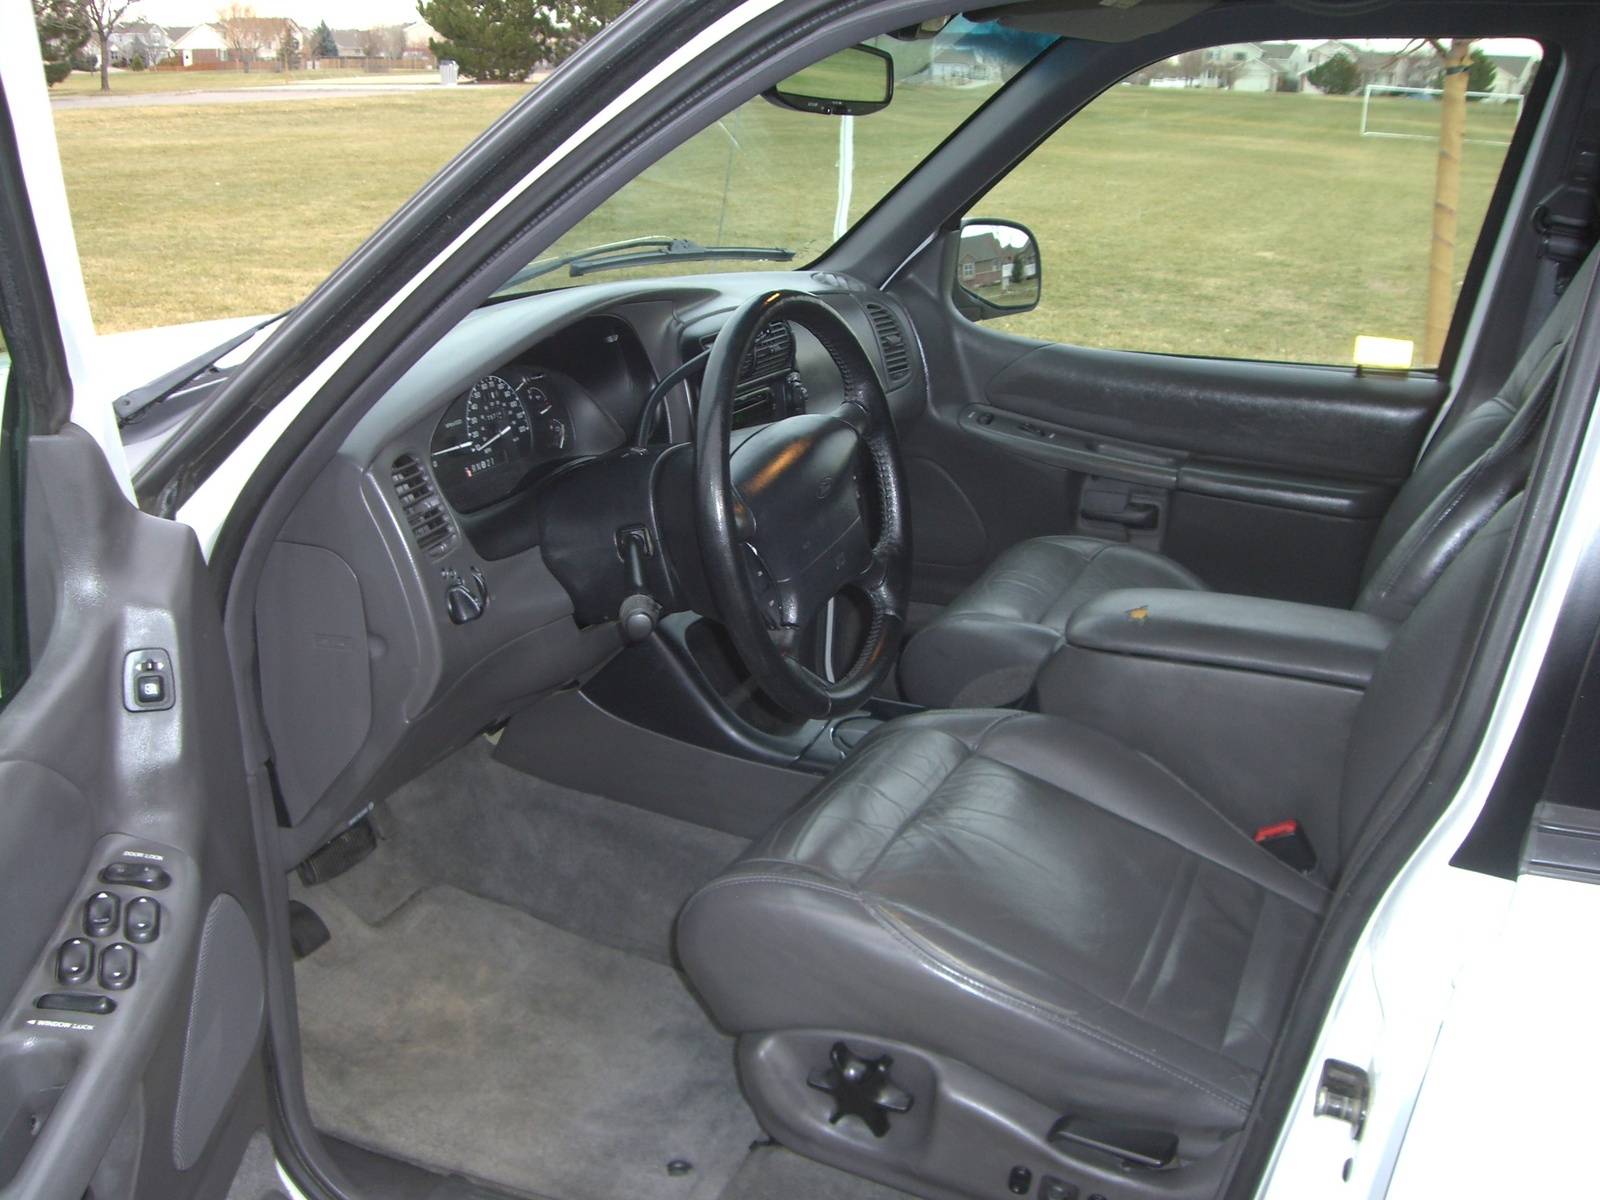 1999 Ford Explorer Interior Pictures Cargurus